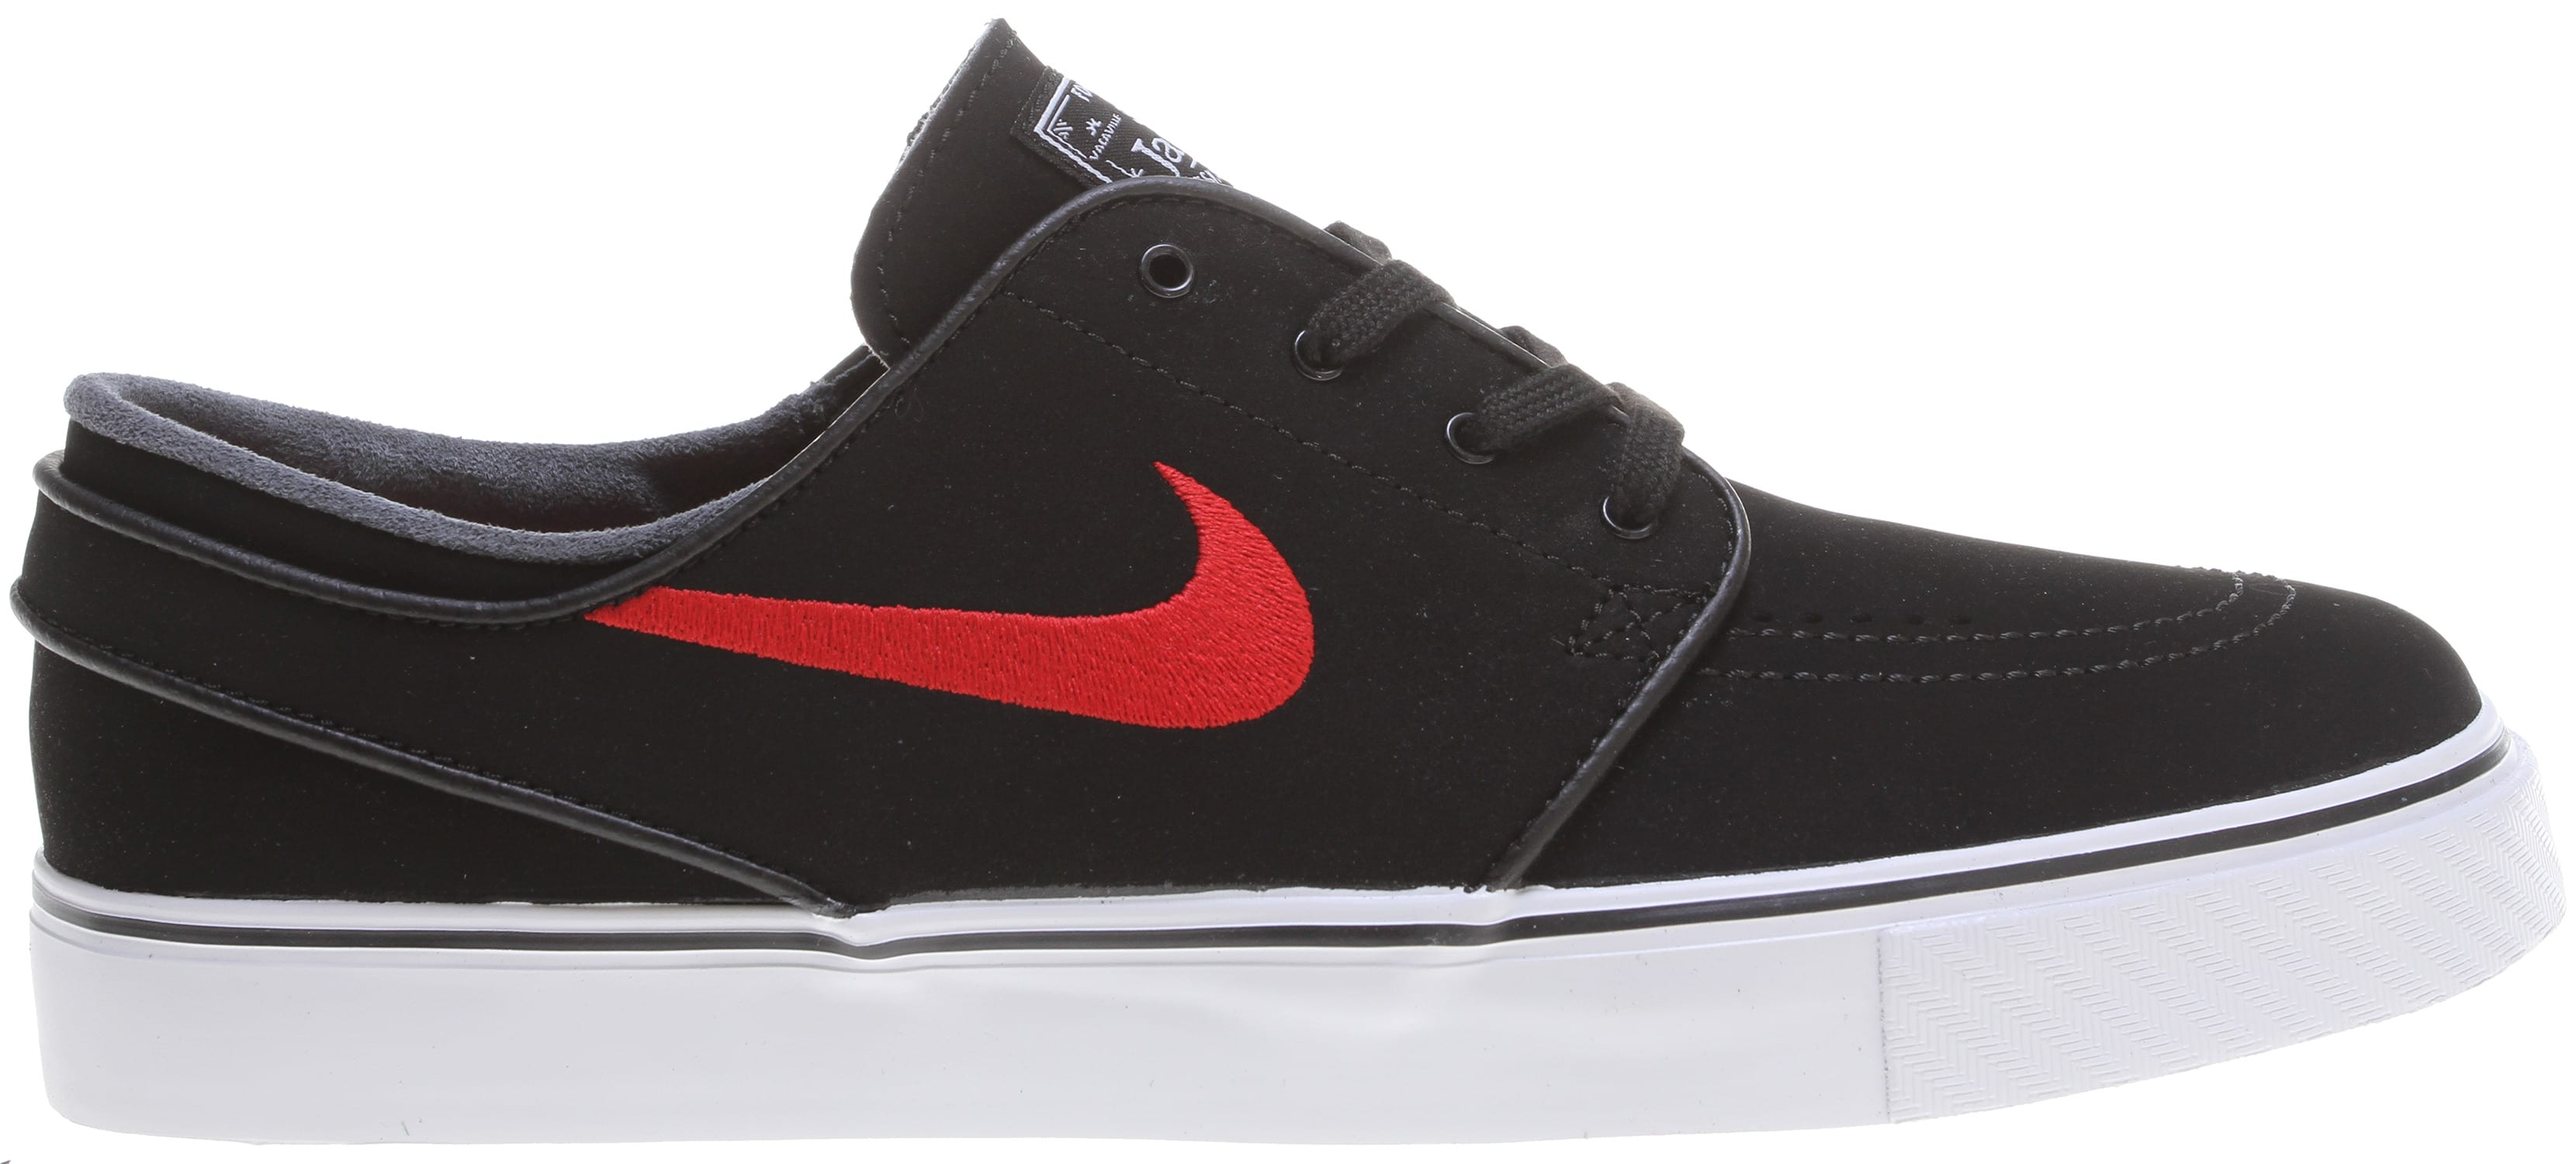 88d5ac42b29e1f nike-zm-stefan-janoski-nb-shoes-blk-white-gym-red-15.jpg